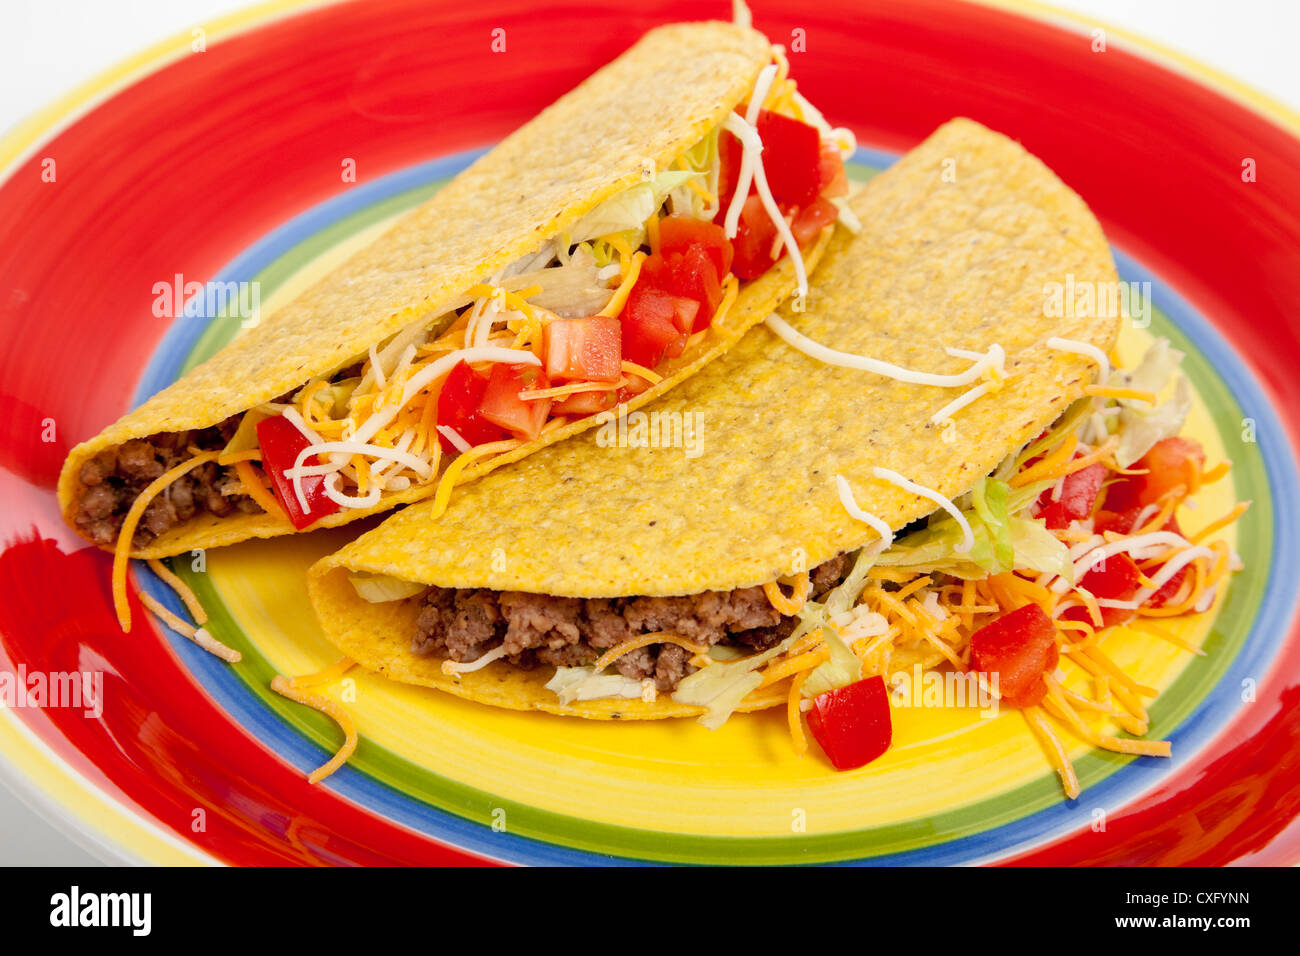 Beef tacos on a colorful plate - Stock Image